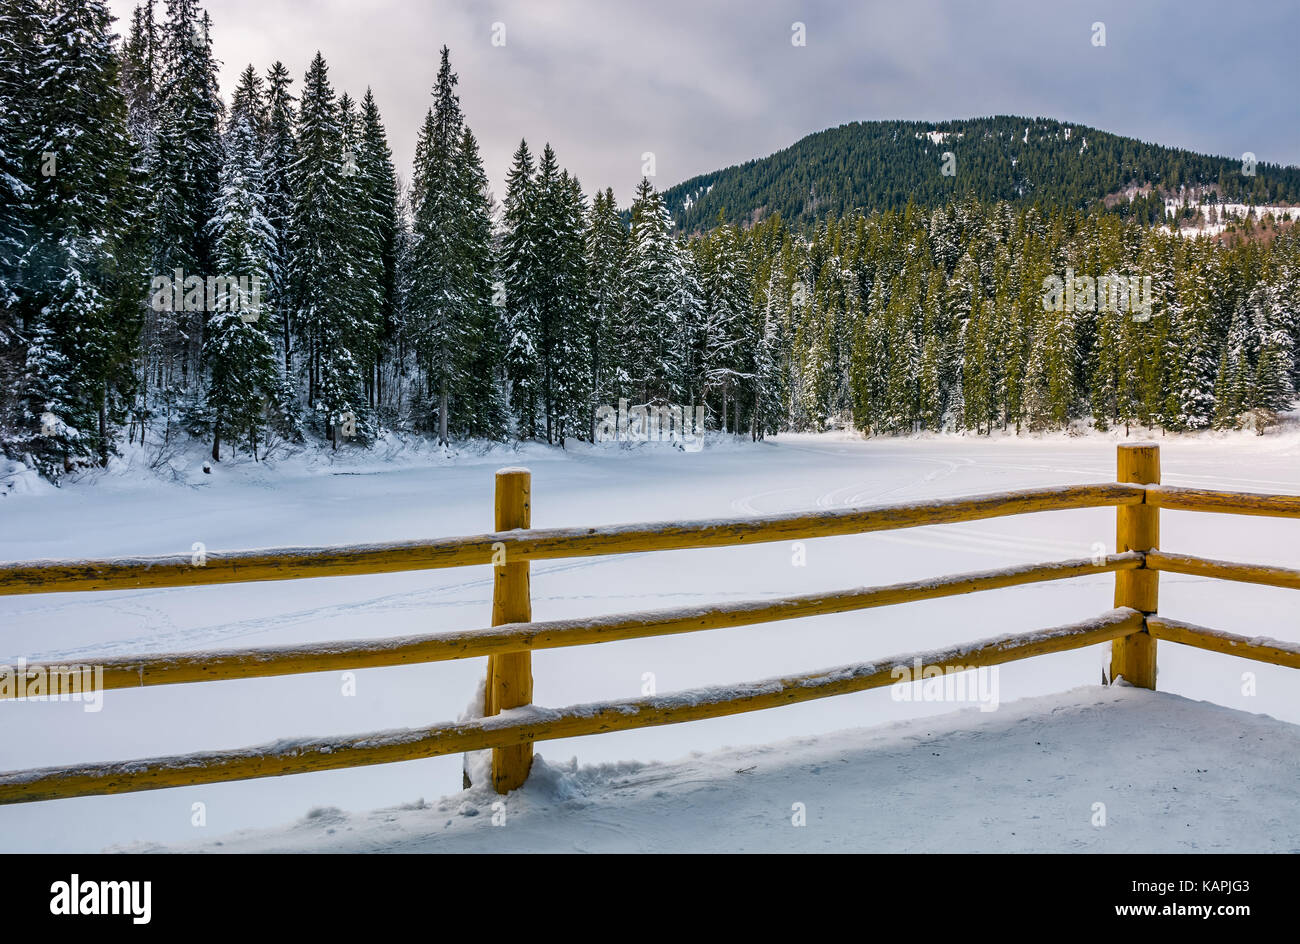 wooden pier on forest lake in winter. beautiful morning scenery in